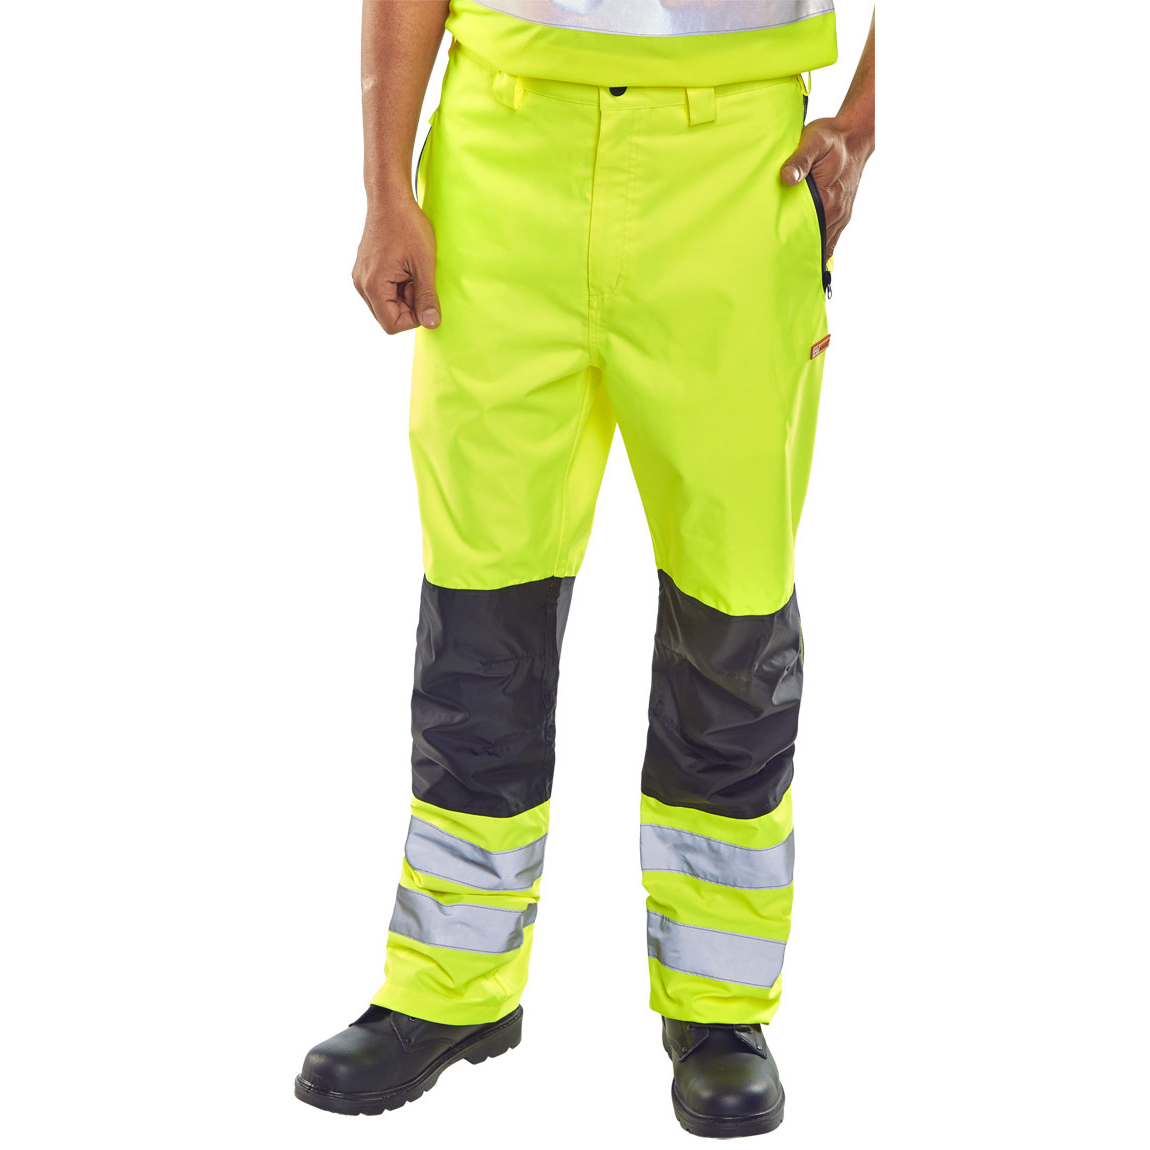 Ladies B-Seen Contrast Trousers Hi-Vis Waterproof 4XL Saturn Yellow Ref BD85SY4XL *Up to 3 Day Leadtime*